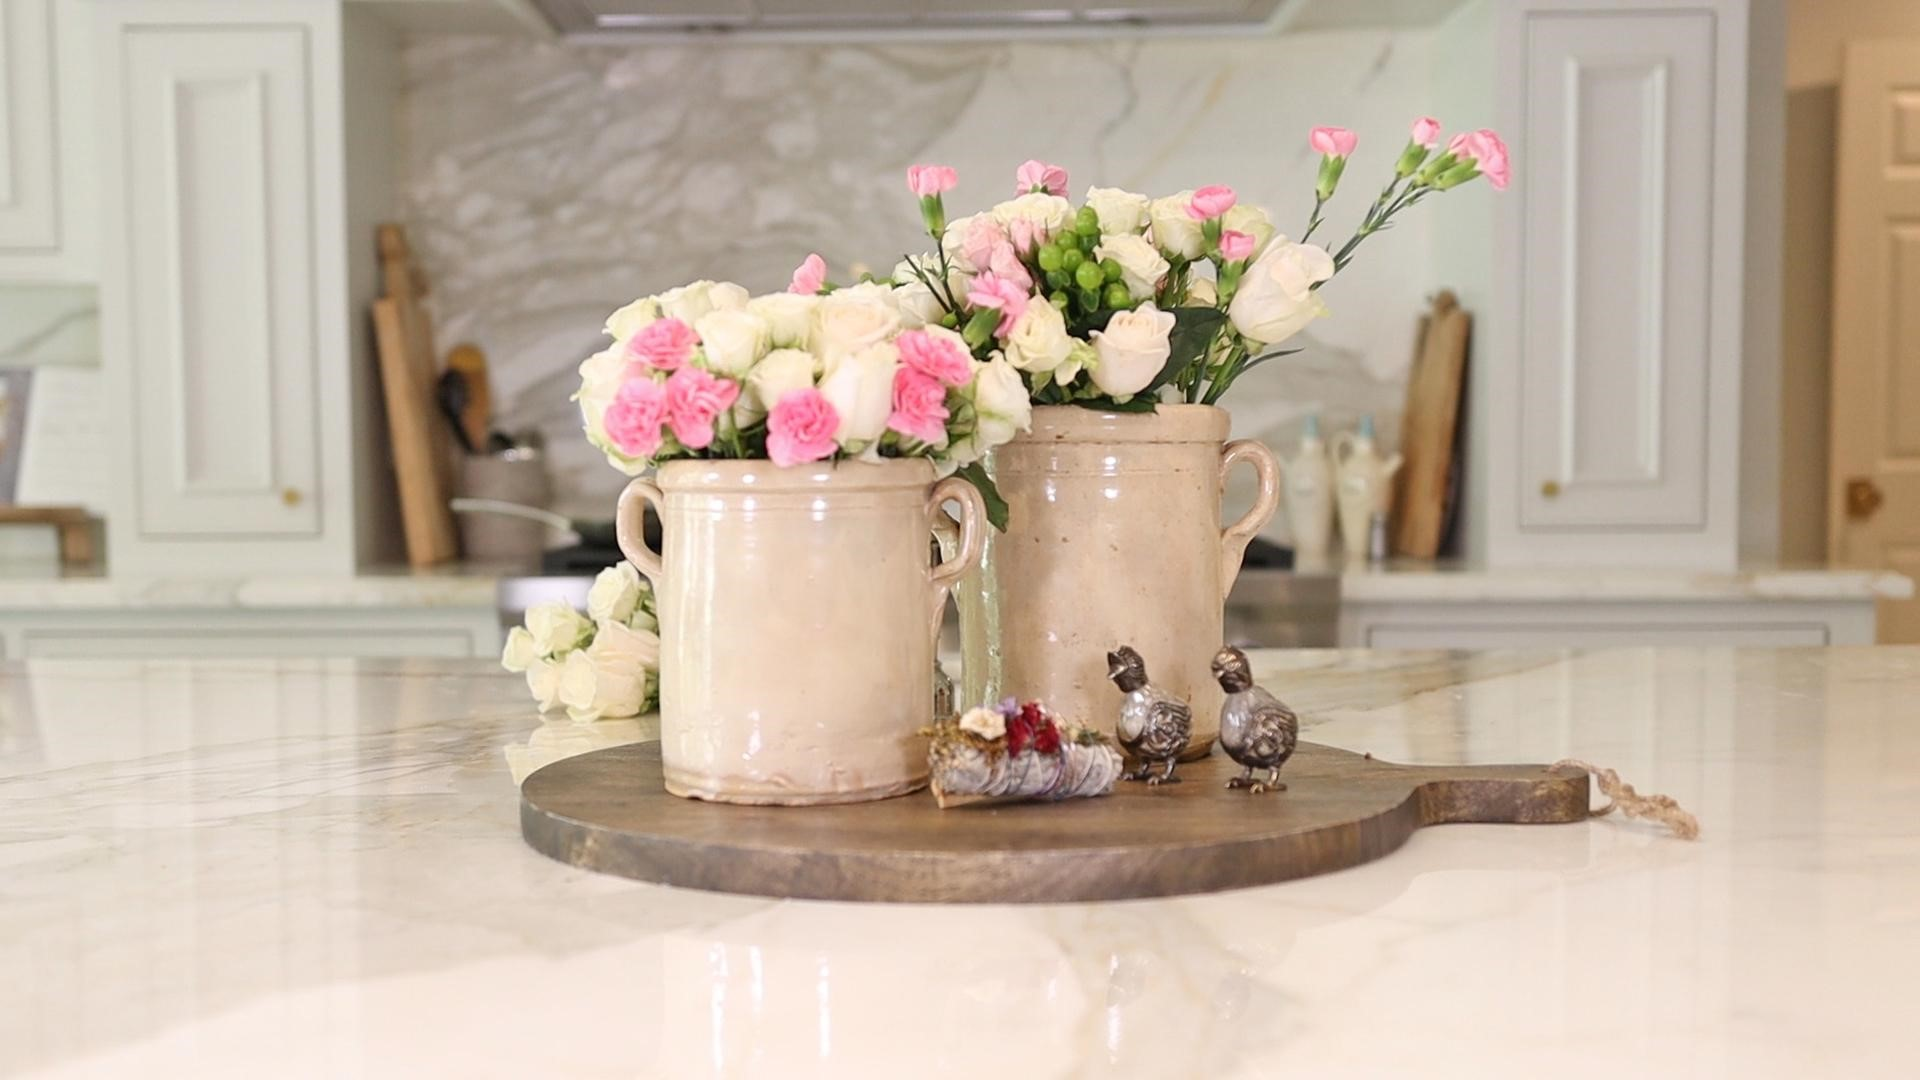 Two pink and white small floral arrangements in vintage french country containers on a breadboard in the kitchen.